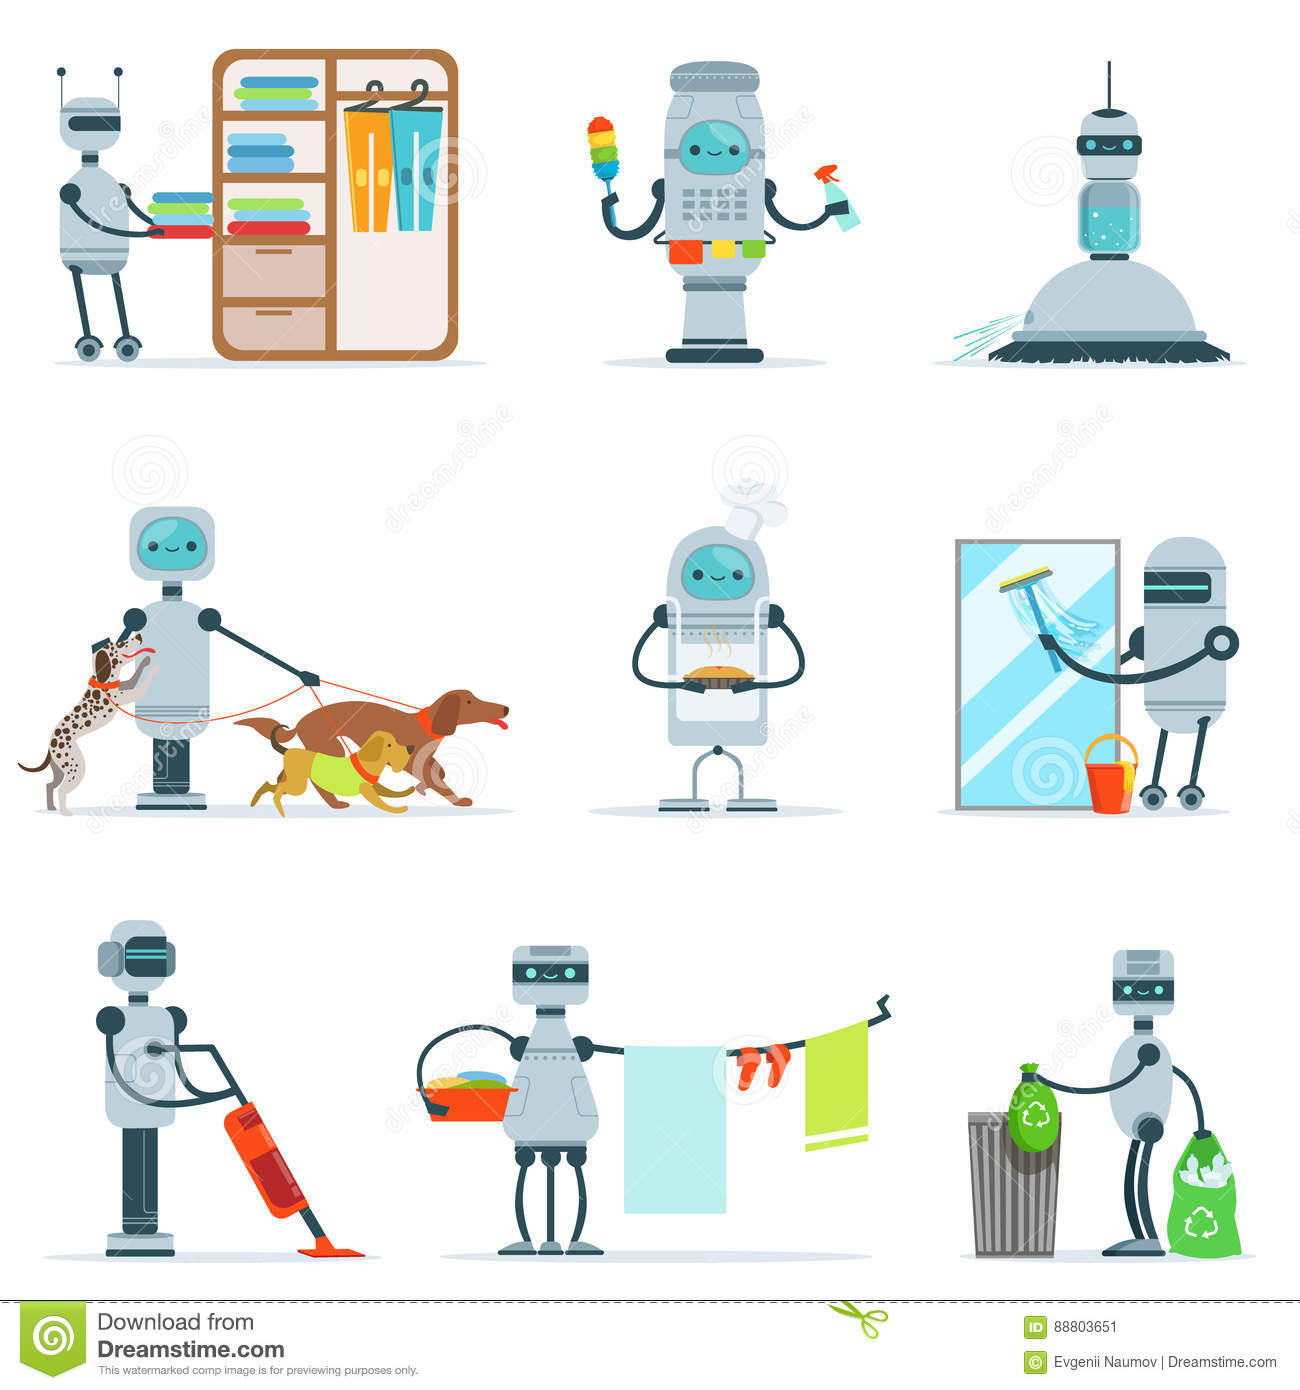 housekeeping household robot doing home cleanup and other duties housekeeping household robot doing home cleanup and other duties set of futuristic illustration servant android